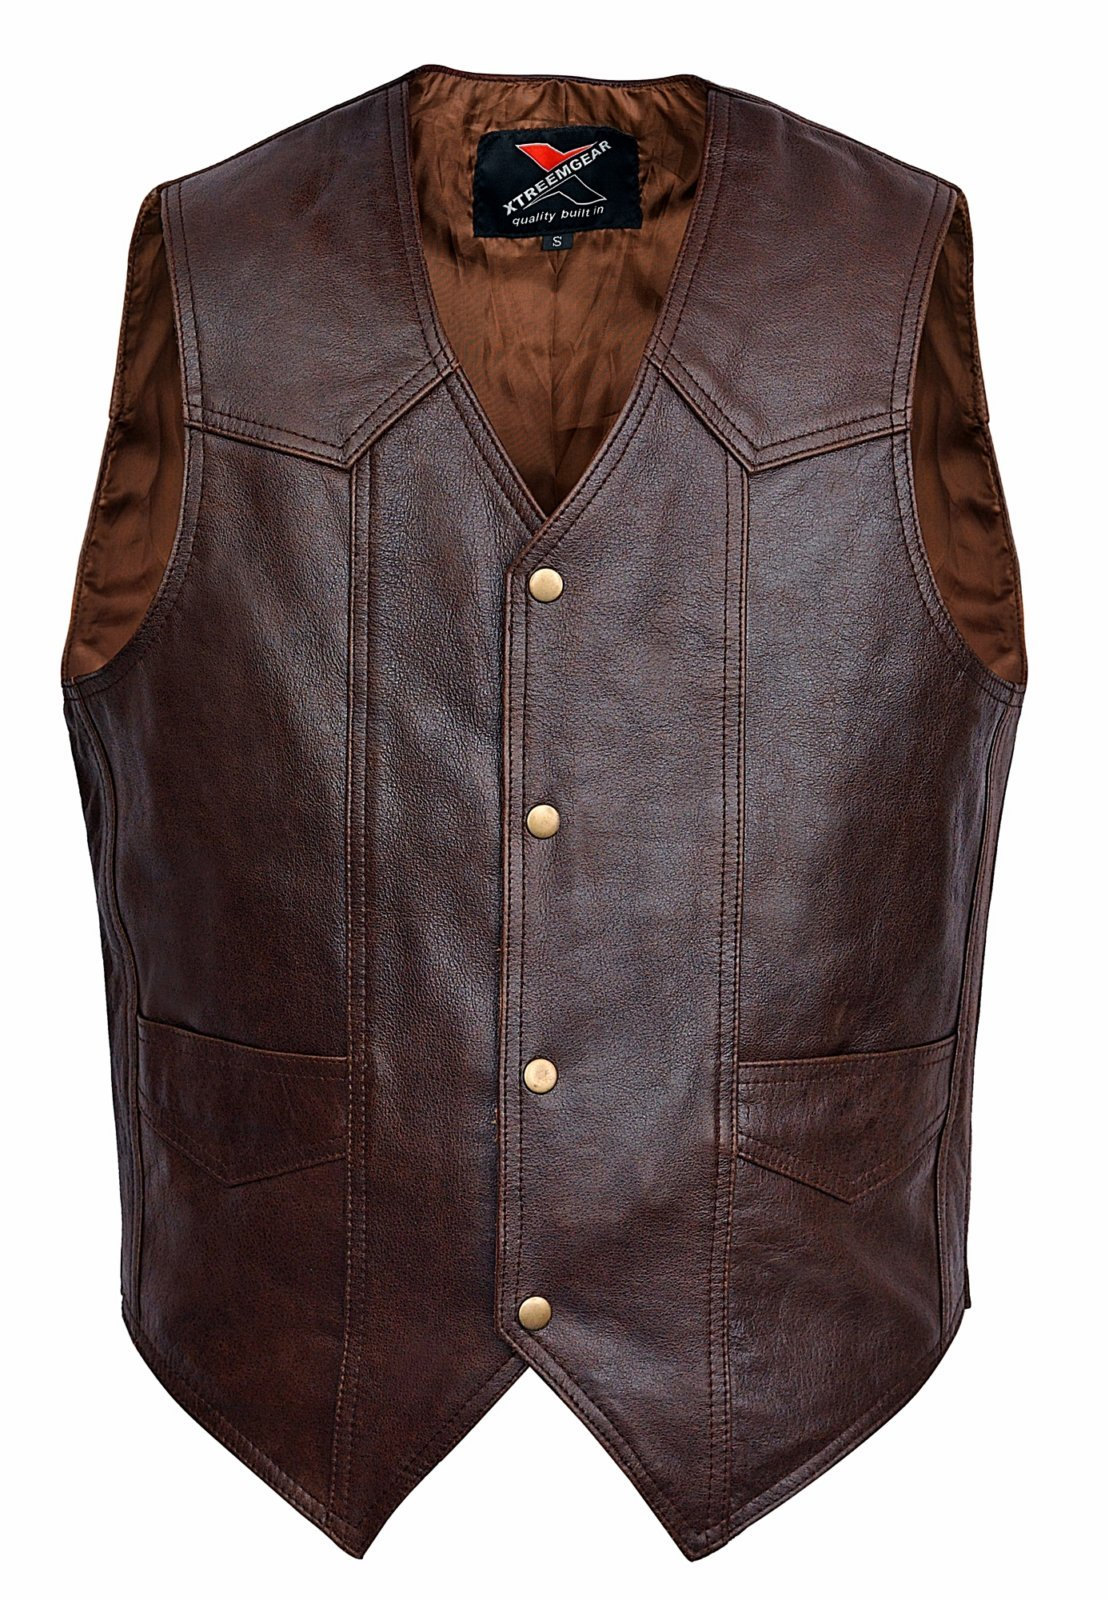 Men Motorcycle Leather Vest Classic Western Style Brown V118 (M)